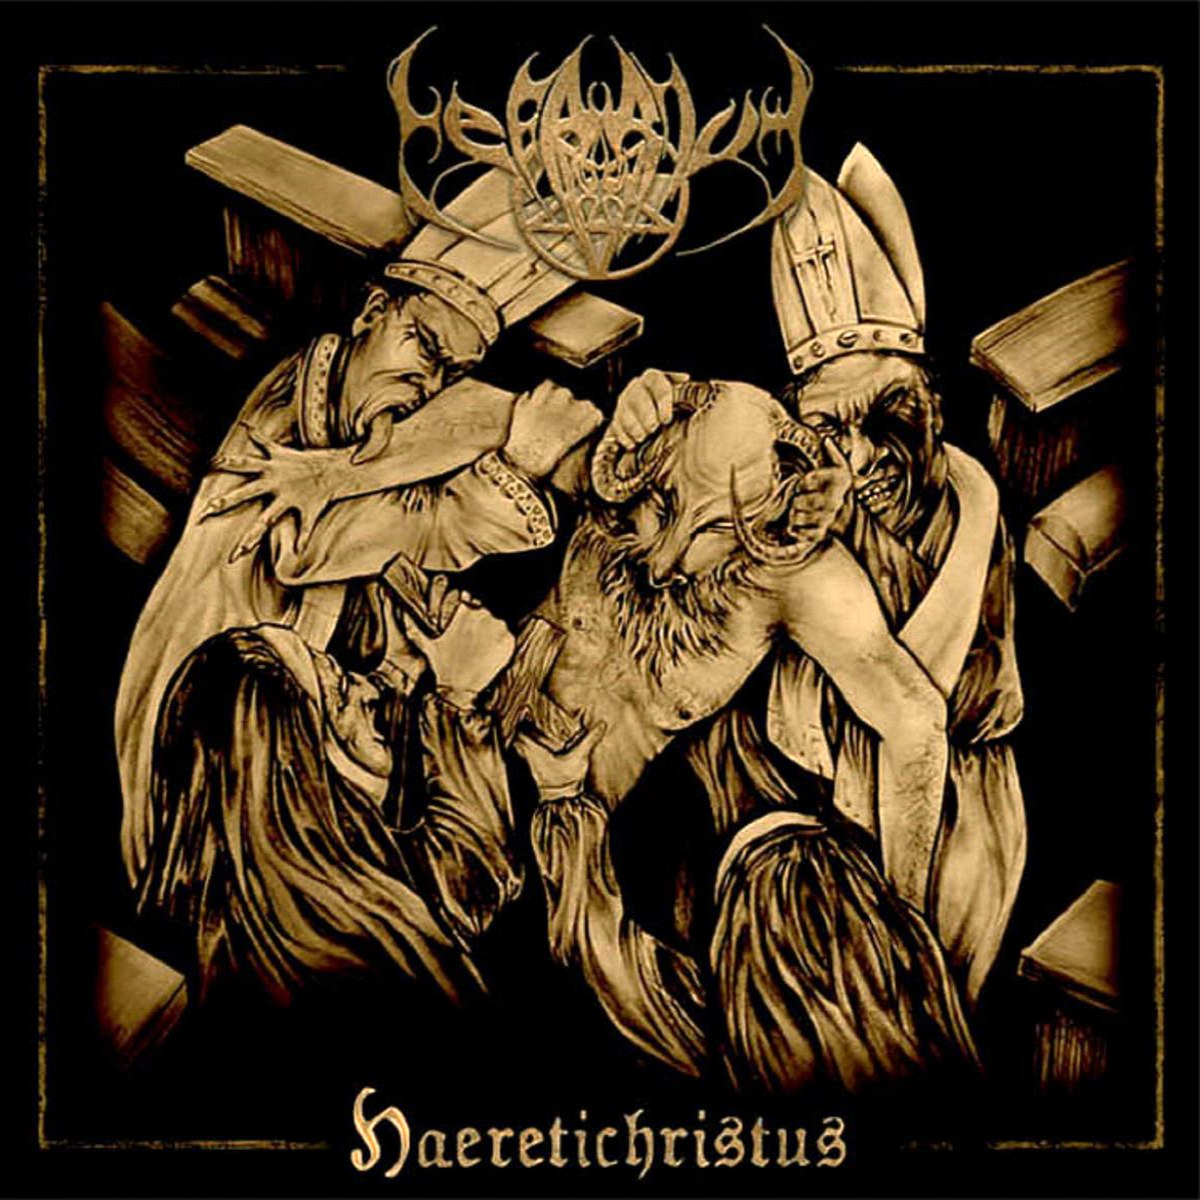 Review for Nefarium - Haeretichristus